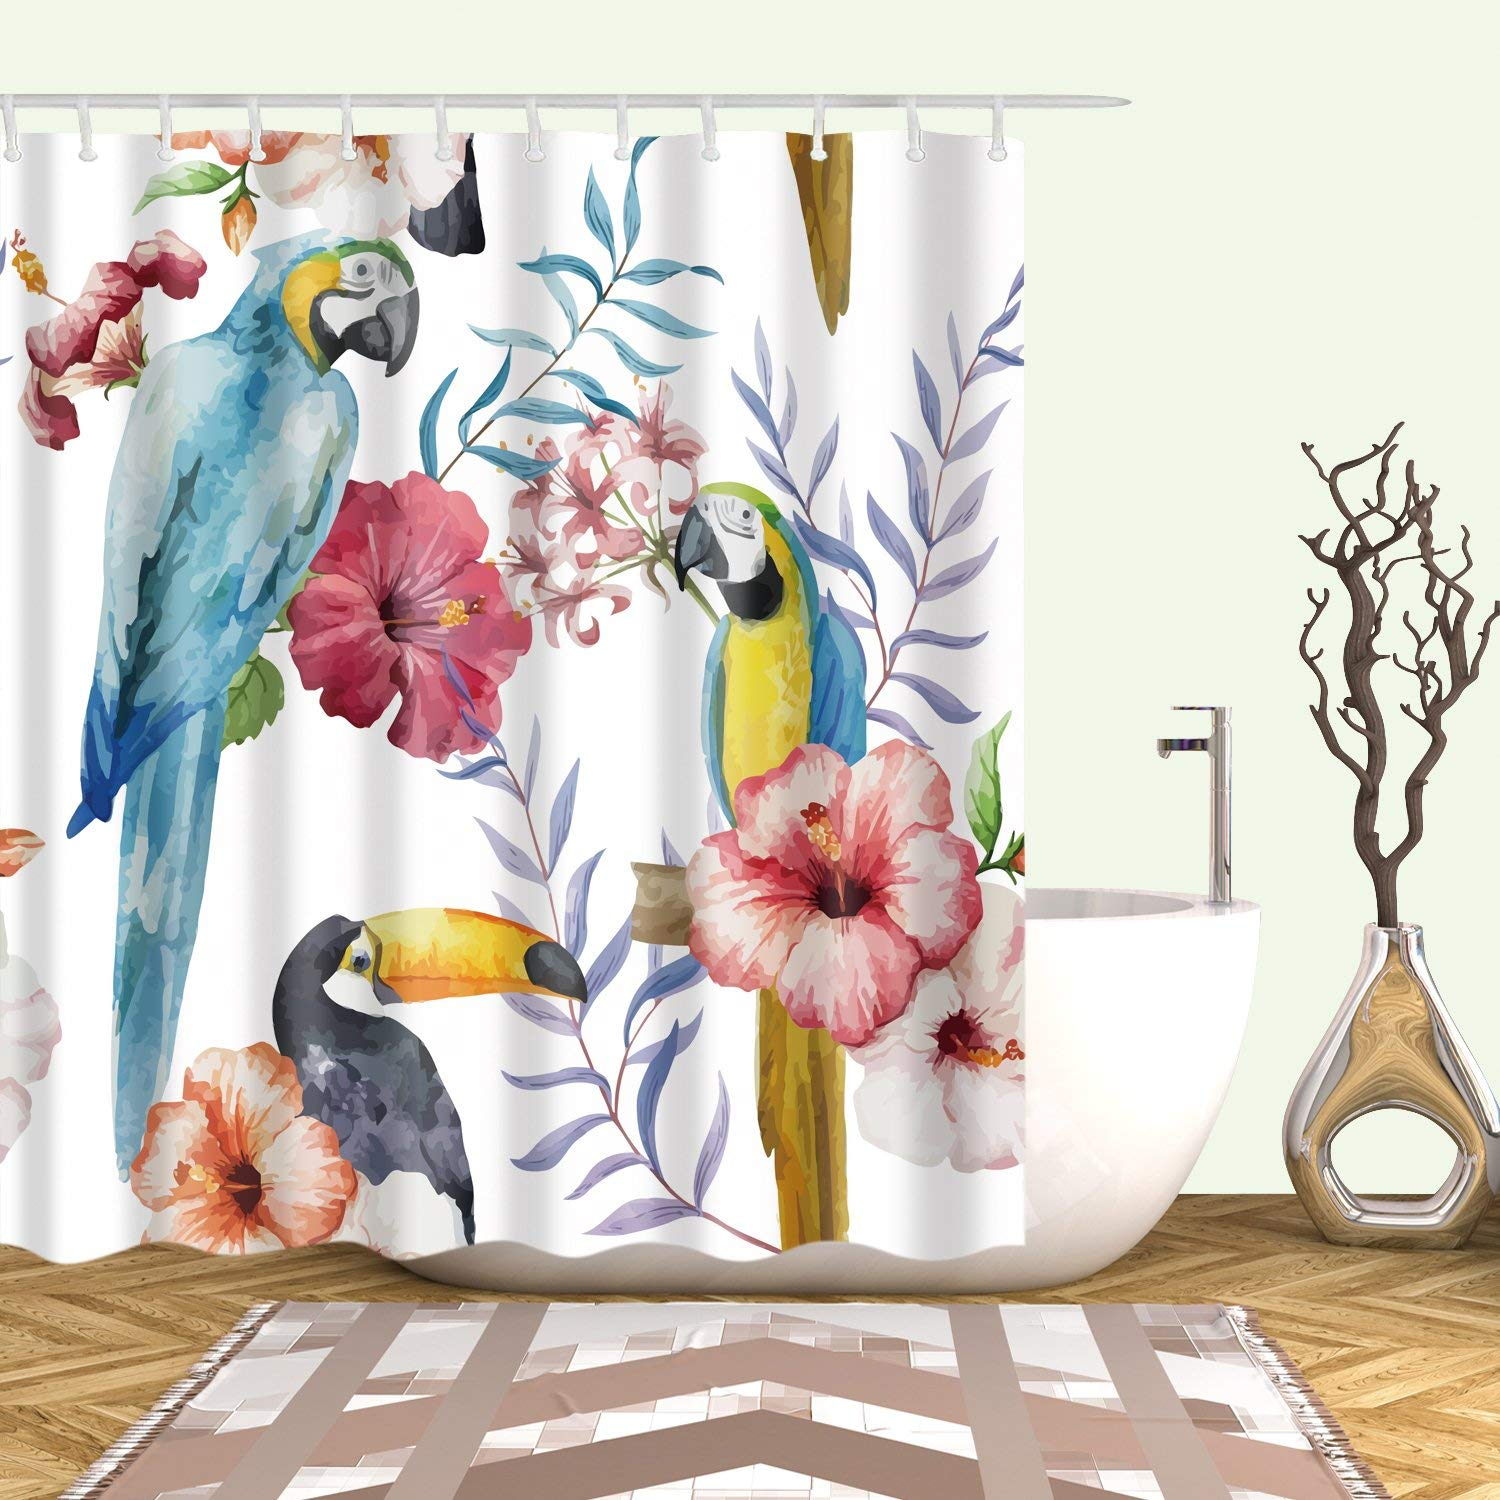 Parrot Home Decoration Accessories Bathroom Natural Scene Shower Curtains Waterproof Anti Mildew With Hooks